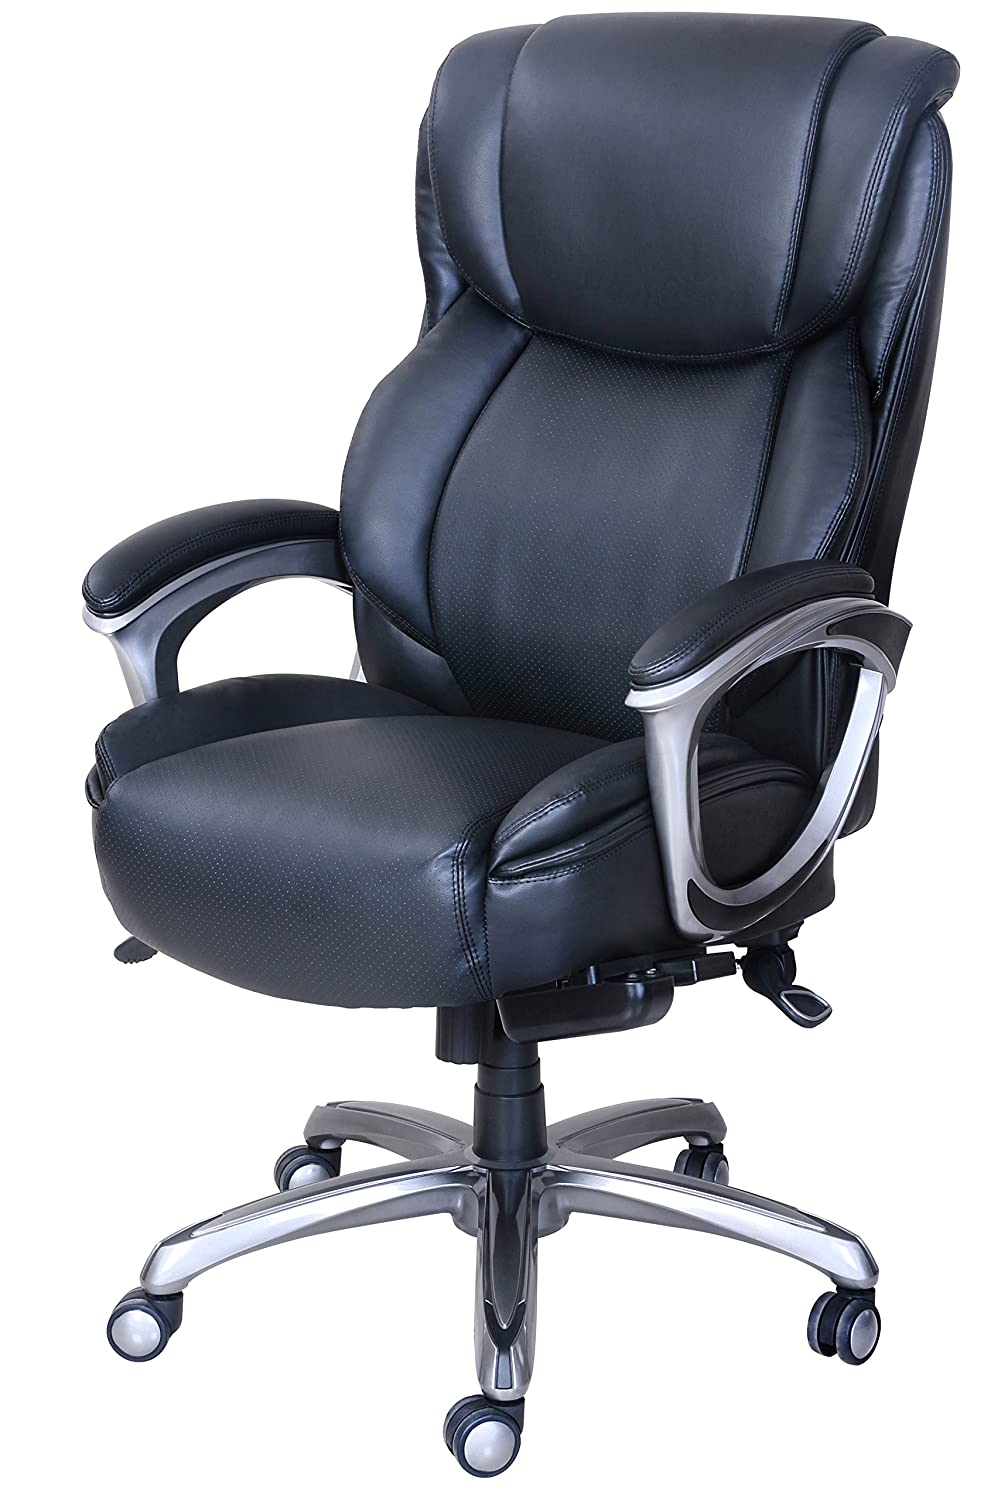 amazoncom gentherm heated and cooled executive office chair hckitchen  dining. amazoncom gentherm heated and cooled executive office chair hc